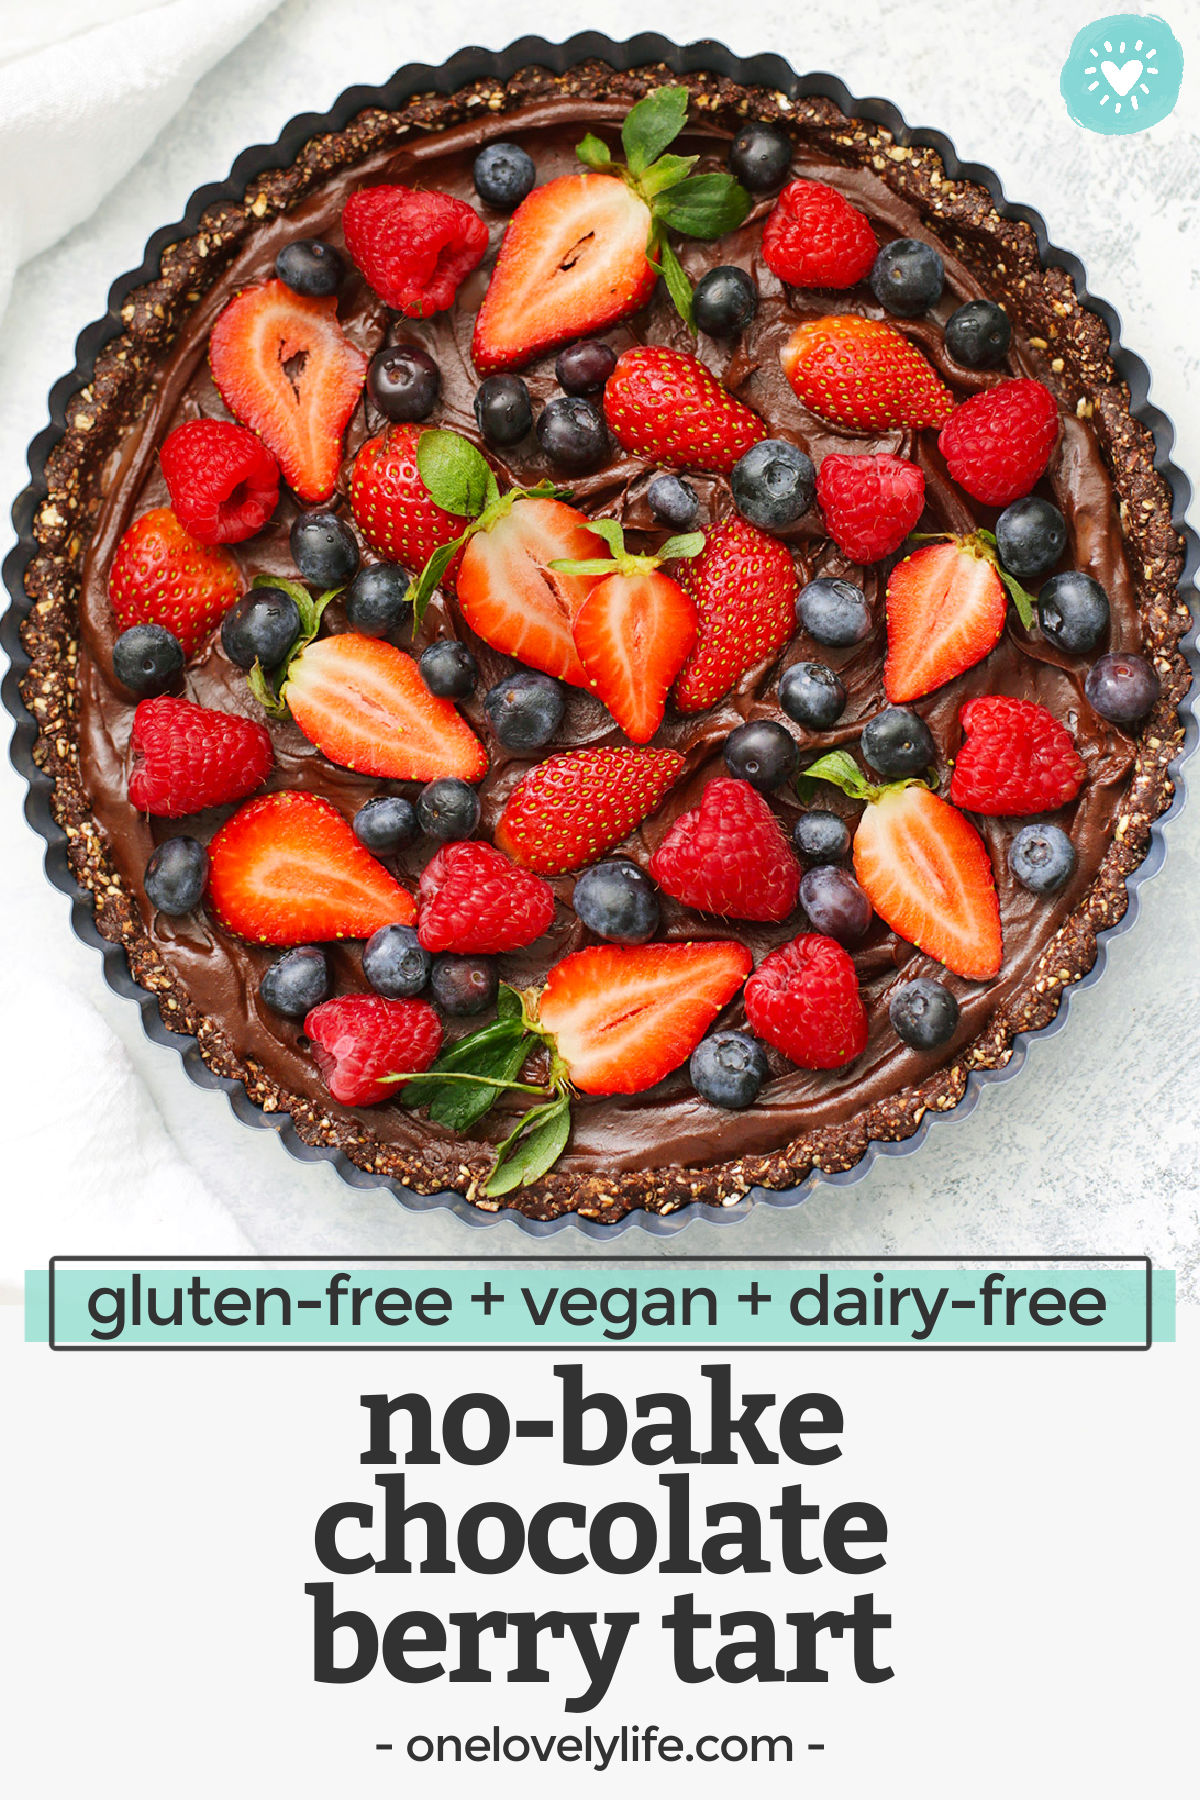 No BakeChocolate Berry Tart - This gluten free vegan chocolate tart tastes so fresh and luscious.It's gluten free, dairy free, refined sugar free, and really makes a statement. The belle ofthe ball at any dinner or party!// Dairy free chocolate tart // gluten free chocolate tart // no bake desserts // Valentine's Day Dessert #chocolate #tart #valentinesday #glutenfree #vegan